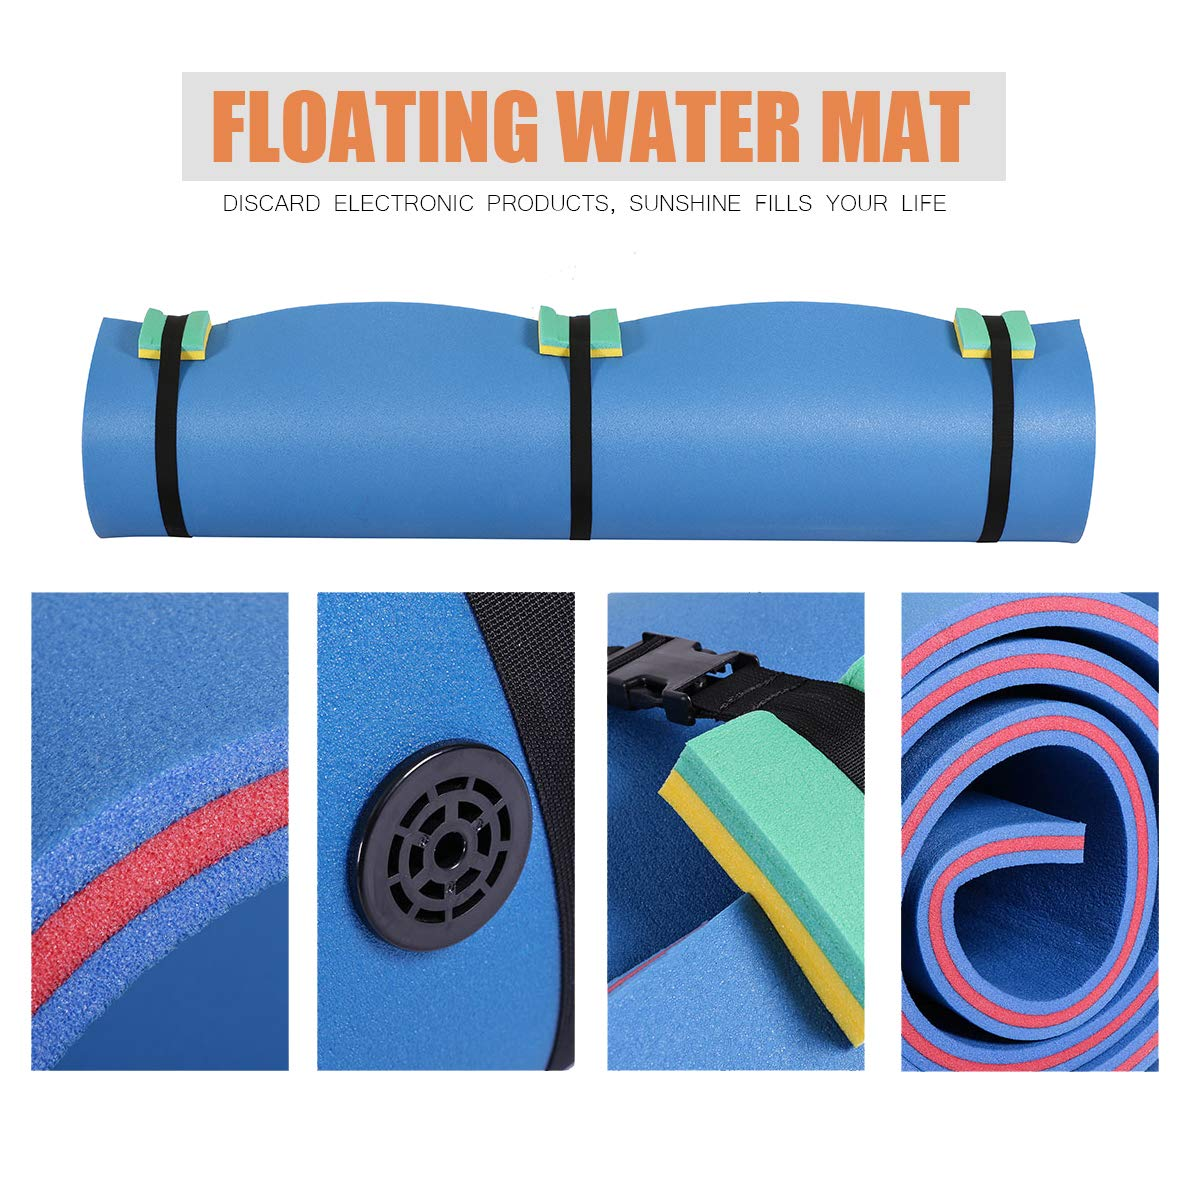 Outroad Floating Mat 12' X 6' - Recreational Floating Foam Pad Adults Kids (Blue)- Lily Pad Used in Ocean/Lake by OUTROAD OUTDOOR CAMPING GARDEN PATIO (Image #5)